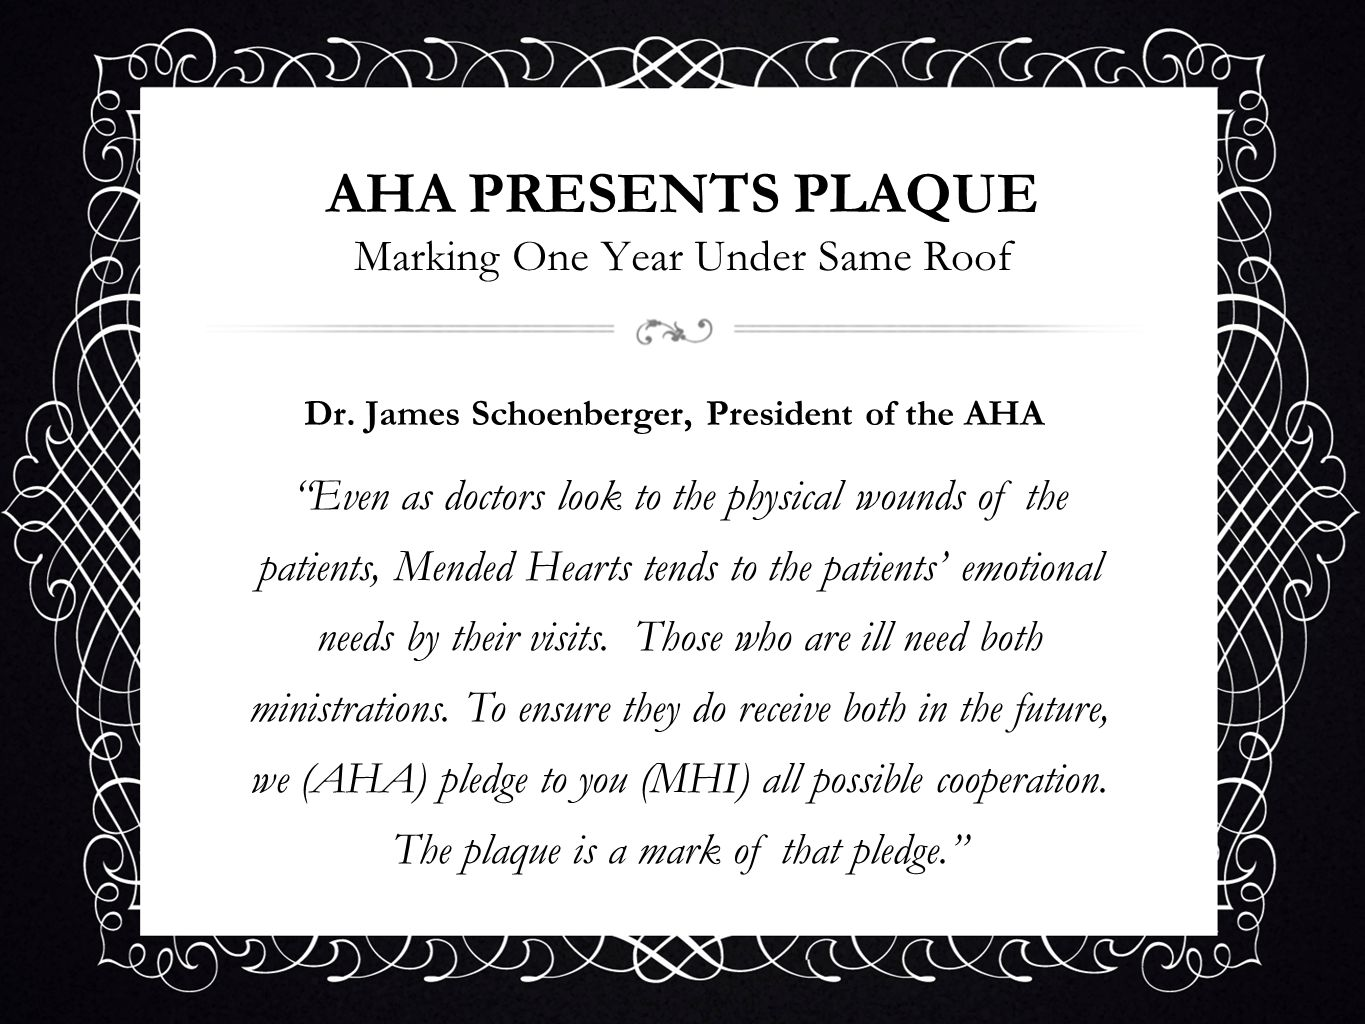 AHA PRESENTS PLAQUE Marking One Year Under Same Roof